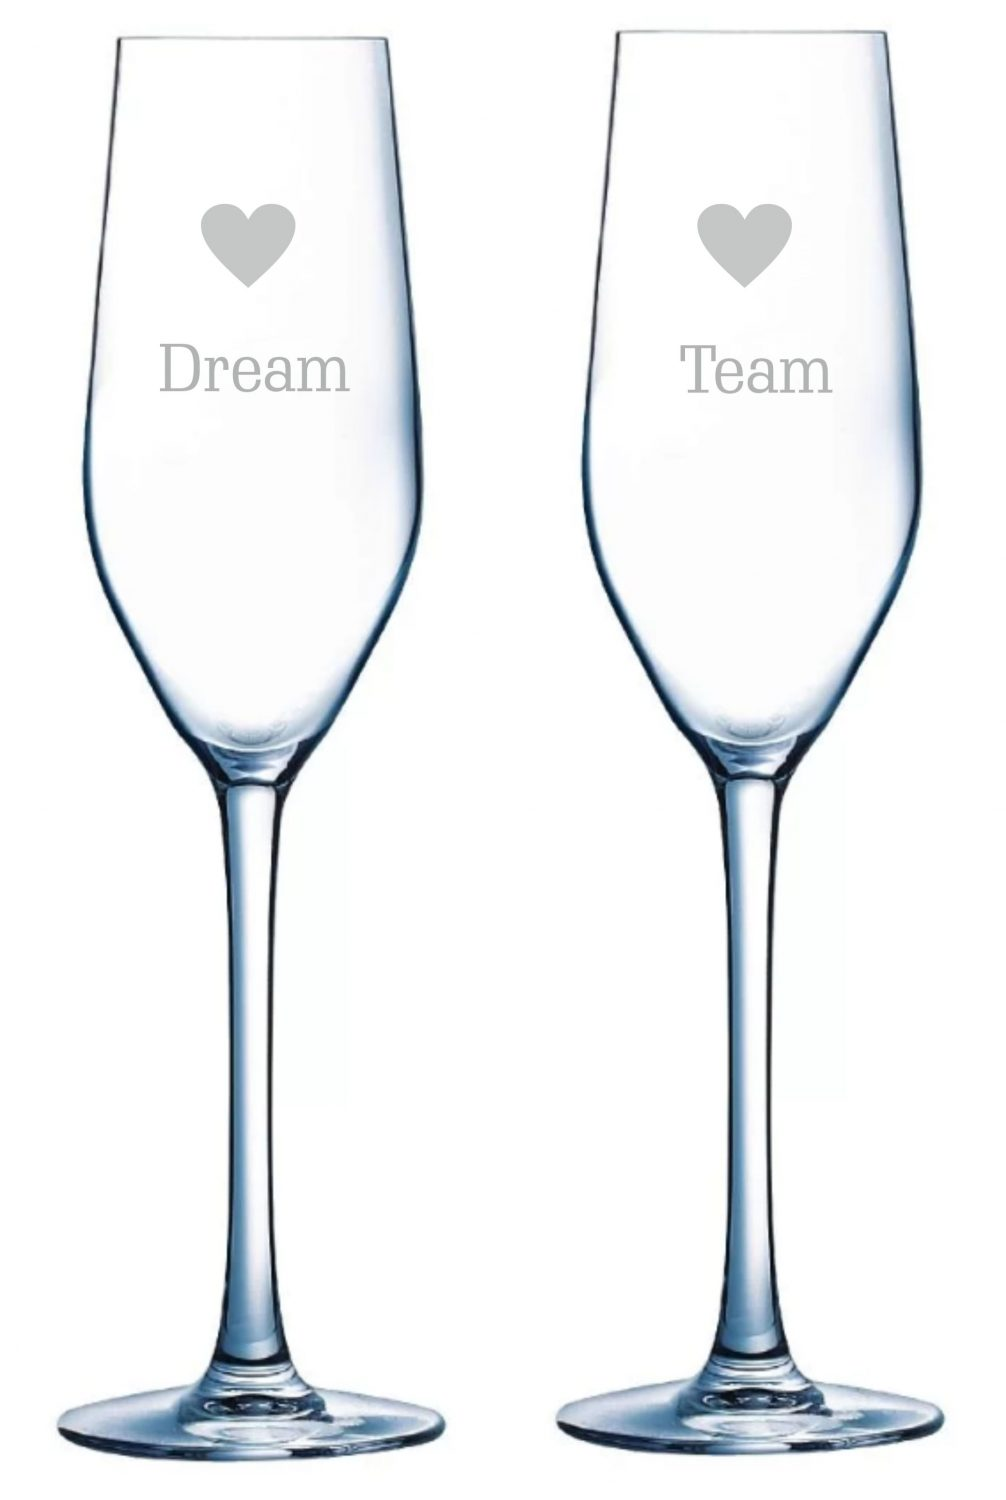 Dream Team, Slogan Champagne Flutes